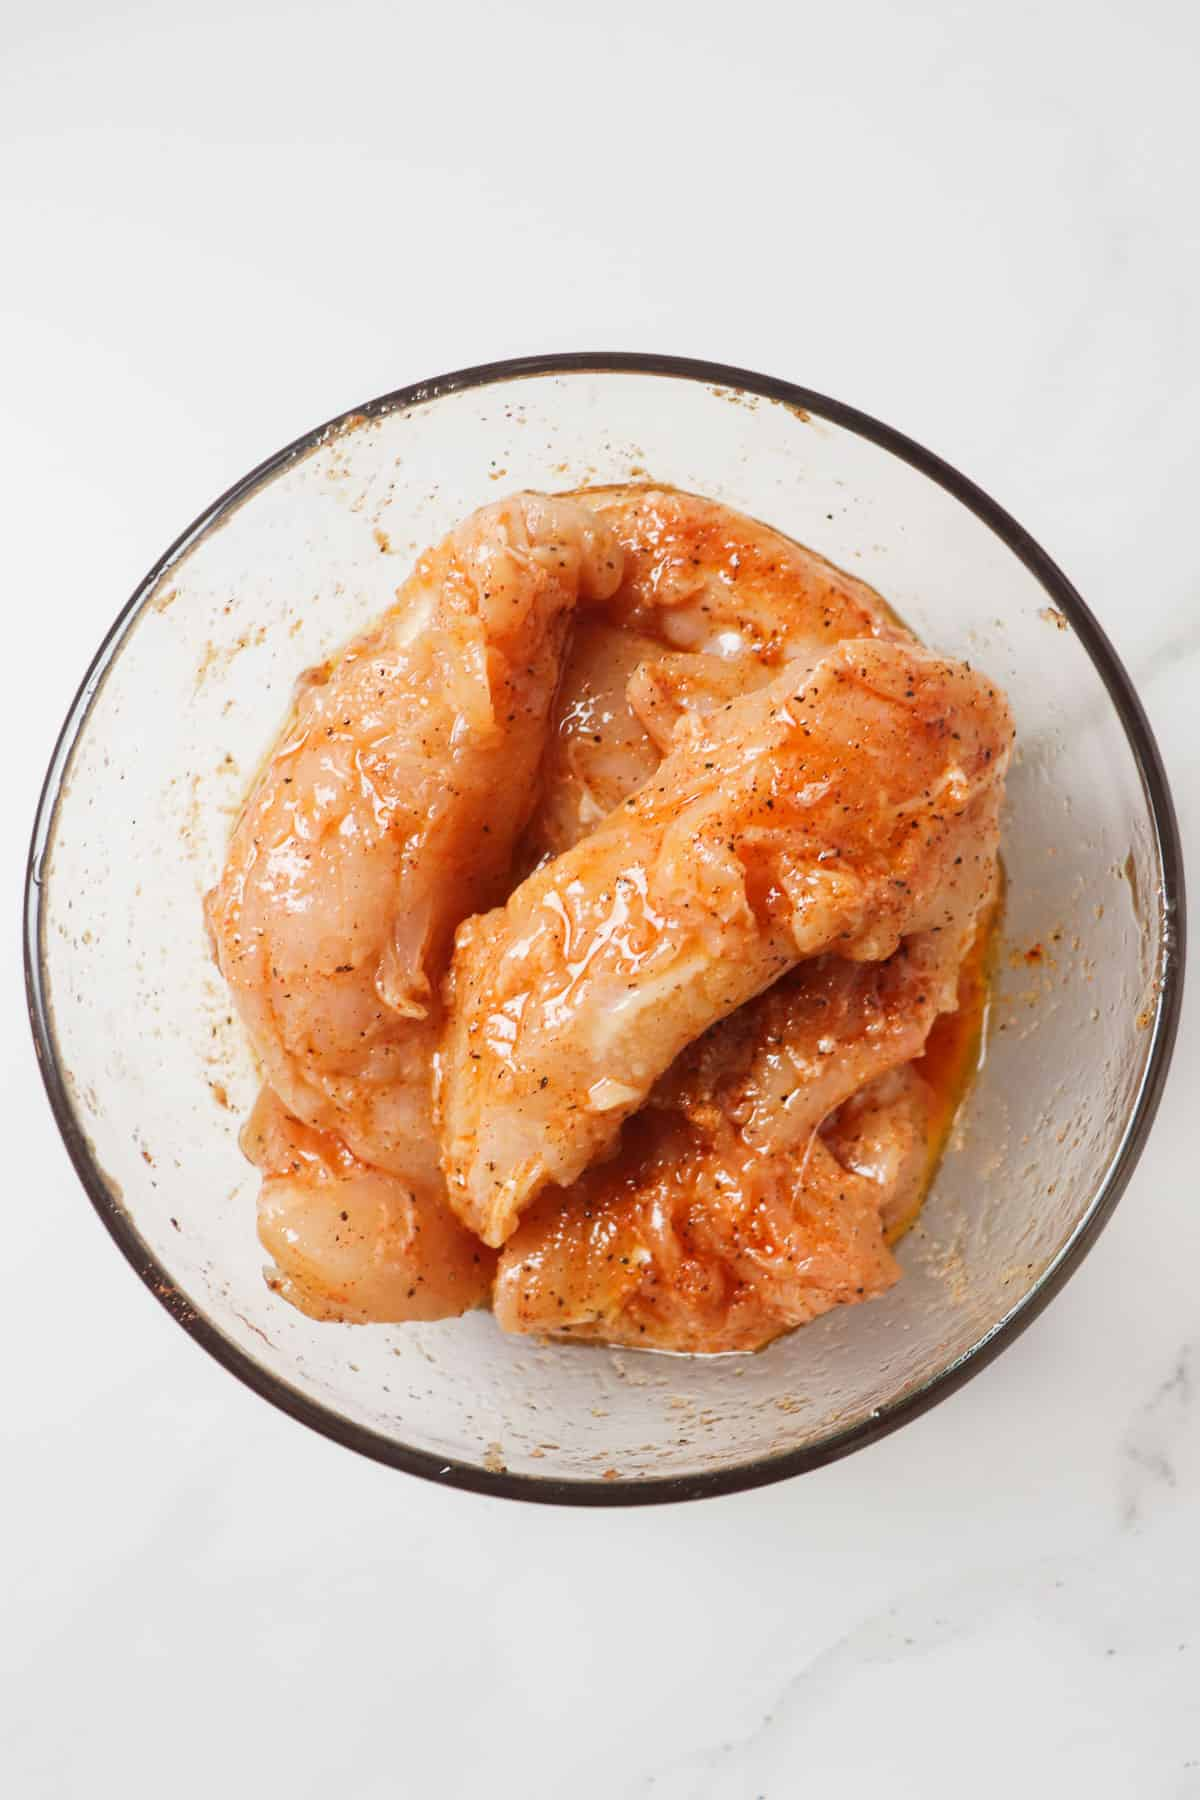 raw chicken tenders marinating in glass bowl